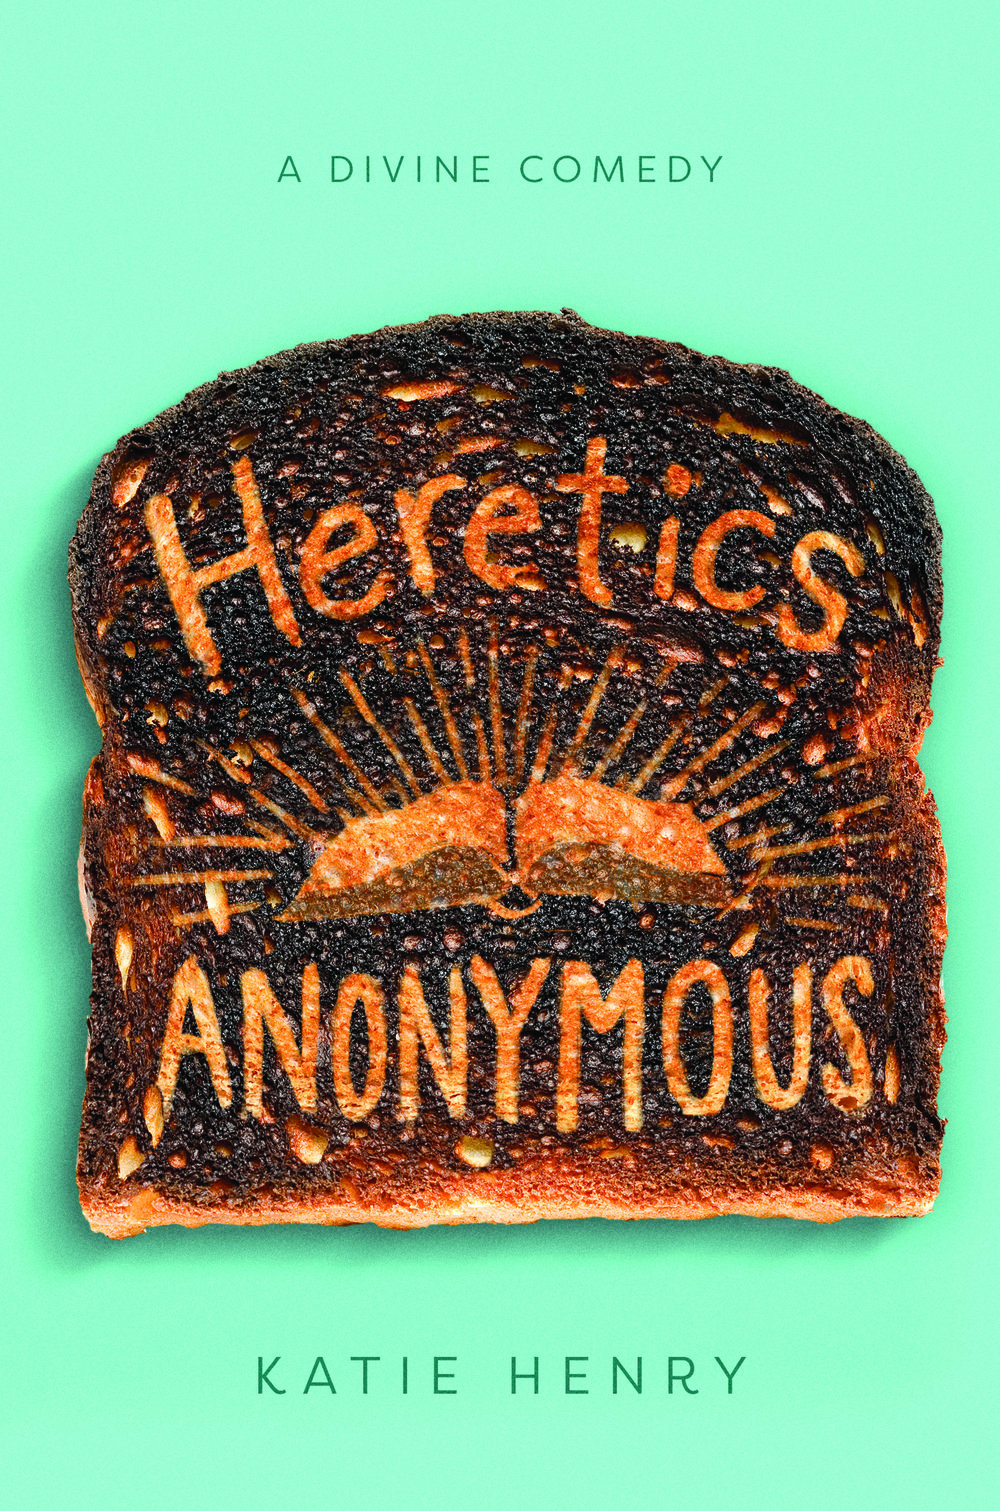 Happy book birthday to HERETICS ANONYMOUS by Katie Henry! - Put an atheist in a strict Catholic school? Expect comedy, chaos, and an Inquisition. The Breakfast Club meets Saved! in debut author Katie Henry's hilarious novel about a band of misfits who set out to challenge their school, one nun at a time. Perfect for fans of Becky Albertalli and Robyn Schneider.When Michael walks through the doors of Catholic school, things can't get much worse. His dad has just made the family move again, and Michael needs a friend. When a girl challenges their teacher in class, Michael thinks he might have found one, and a fellow atheist at that. Only this girl, Lucy, isn't just Catholic . . . she wants to be a priest.Lucy introduces Michael to other St. Clare's outcasts, and he officially joins Heretics Anonymous, where he can be an atheist, Lucy can be an outspoken feminist, Avi can be Jewish and gay, Max can wear whatever he wants, and Eden can practice paganism.Michael encourages the Heretics to go from secret society to rebels intent on exposing the school's hypocrisies one stunt at a time. But when Michael takes one mission too far—putting the other Heretics at risk—he must decide whether to fight for his own freedom or rely on faith, whatever that means, in God, his friends, or himself.